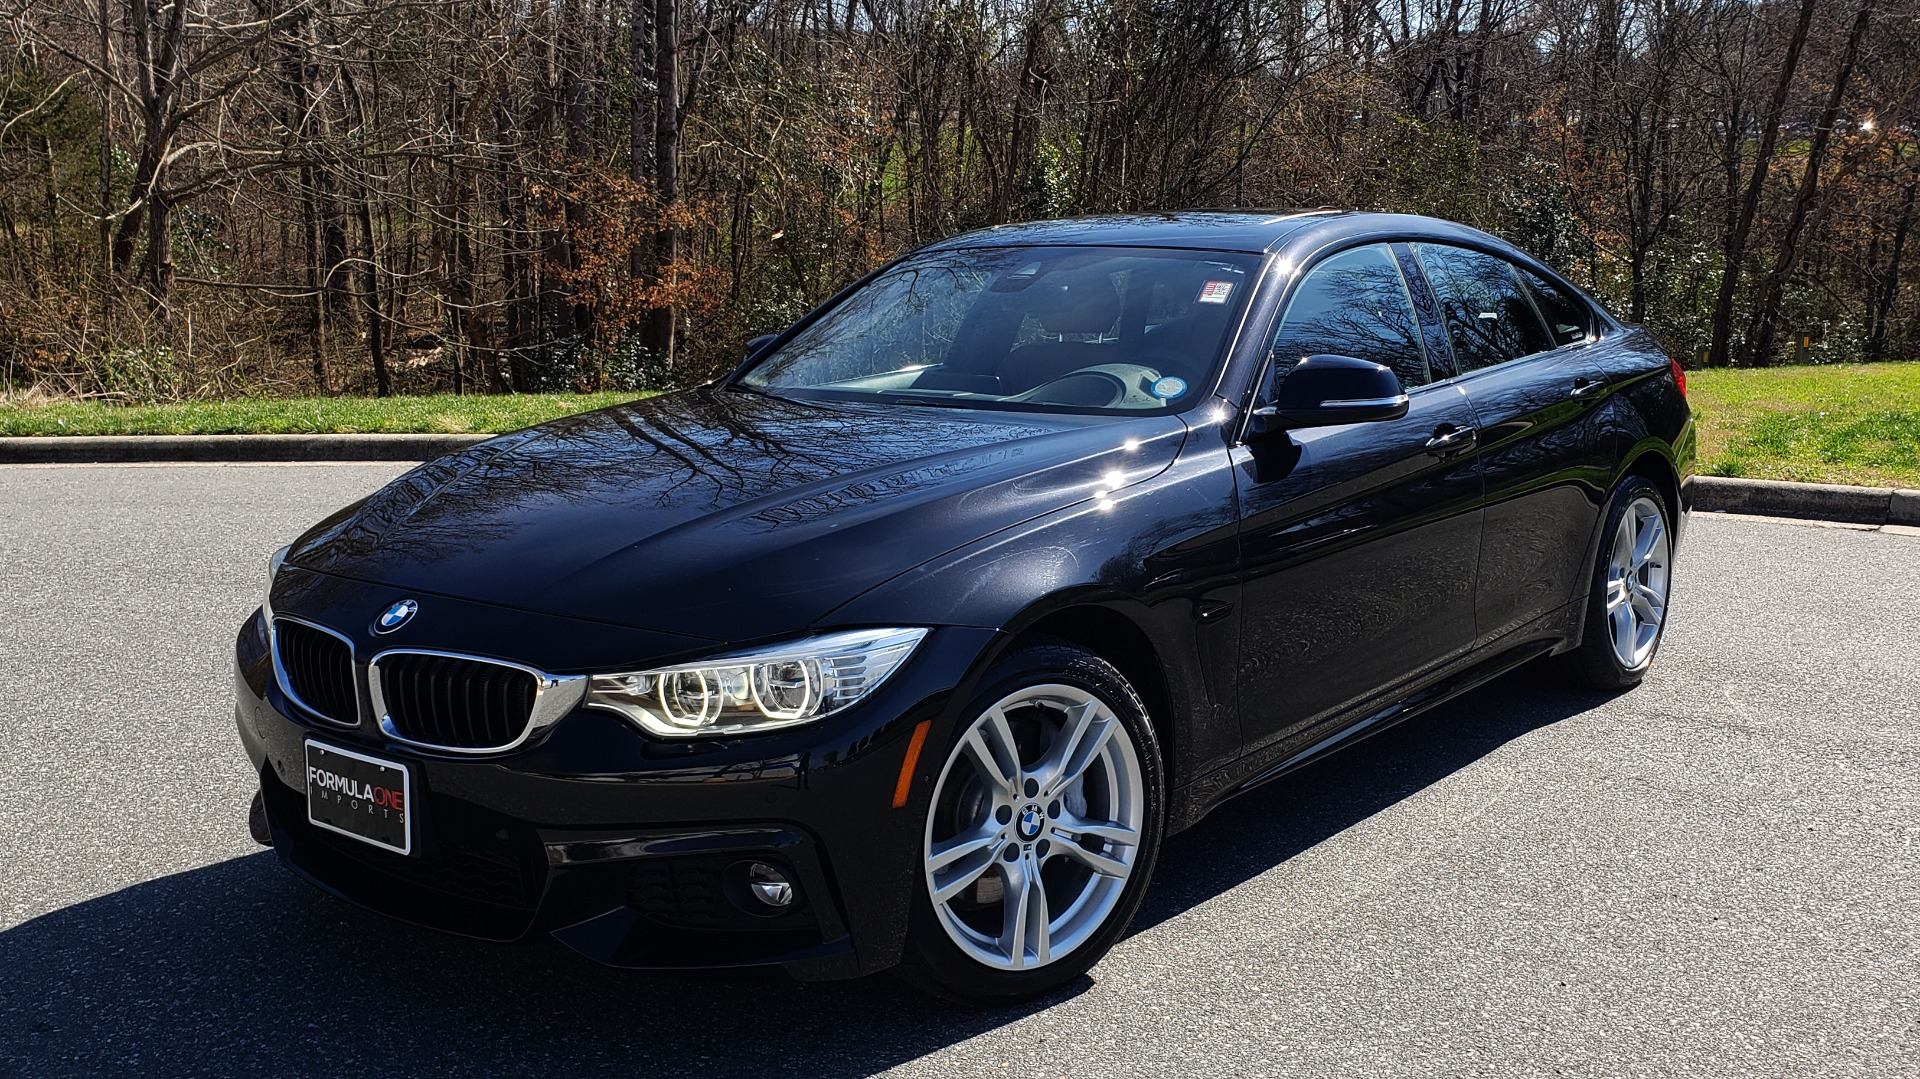 Used 2017 BMW 4 SERIES 440i XDRIVE M-SPORT / TECH / CLD WTHR / DRVR ASST PLUS / LIGHTING for sale Sold at Formula Imports in Charlotte NC 28227 1